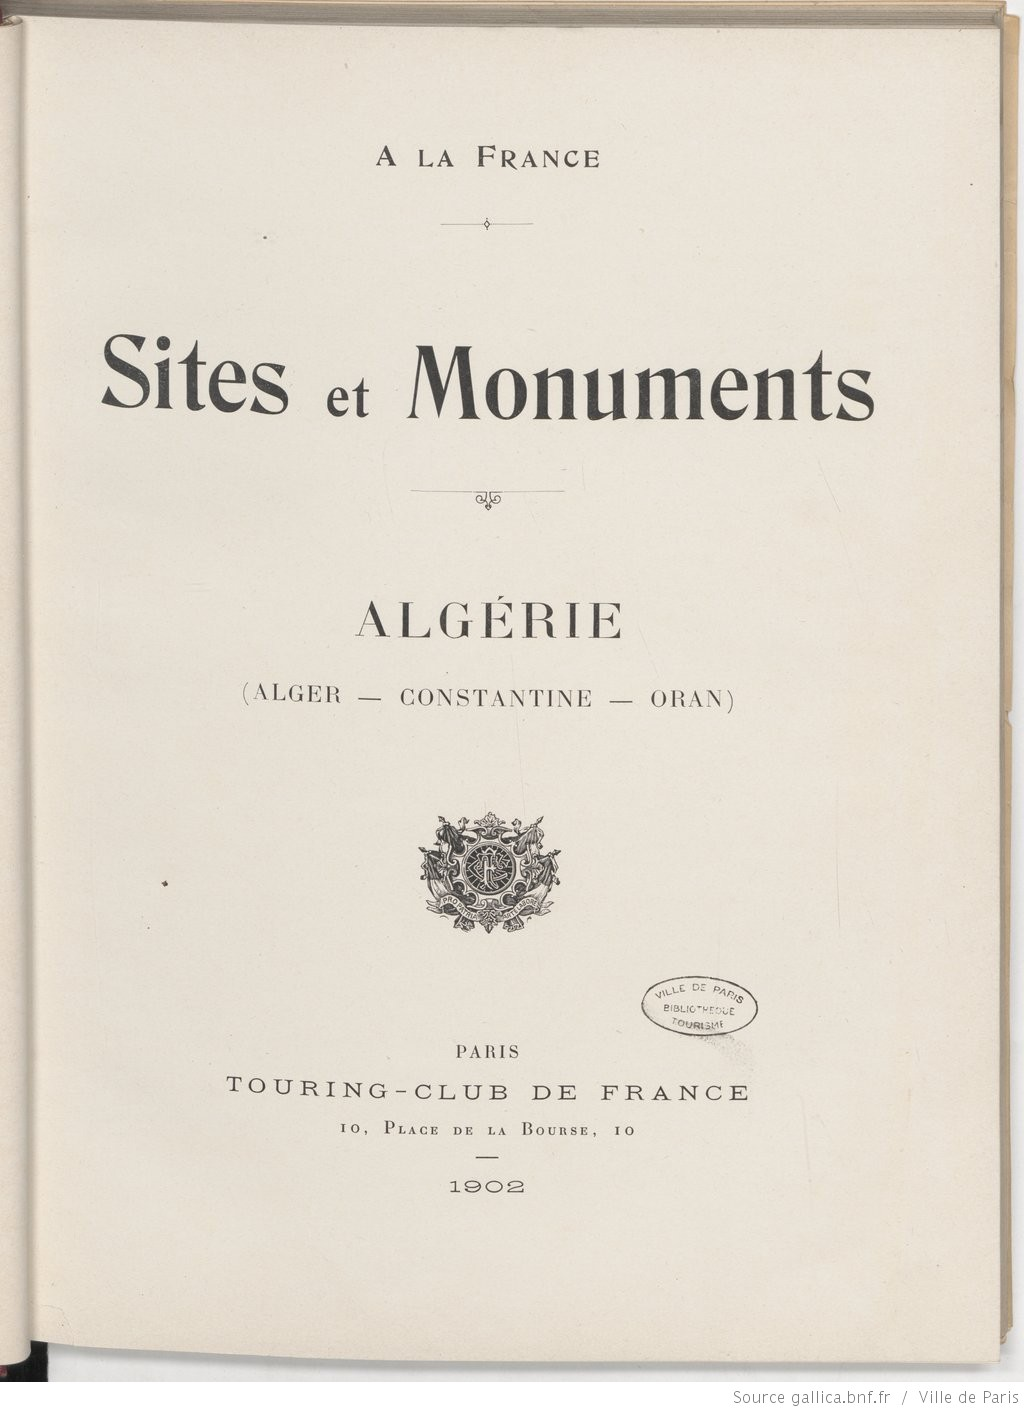 Touring Club de France, À la France : sites et monuments. Algérie (Alger, Constantine, Oran) (notices de Onésime Reclus) | Source : Gallica.fr BnF